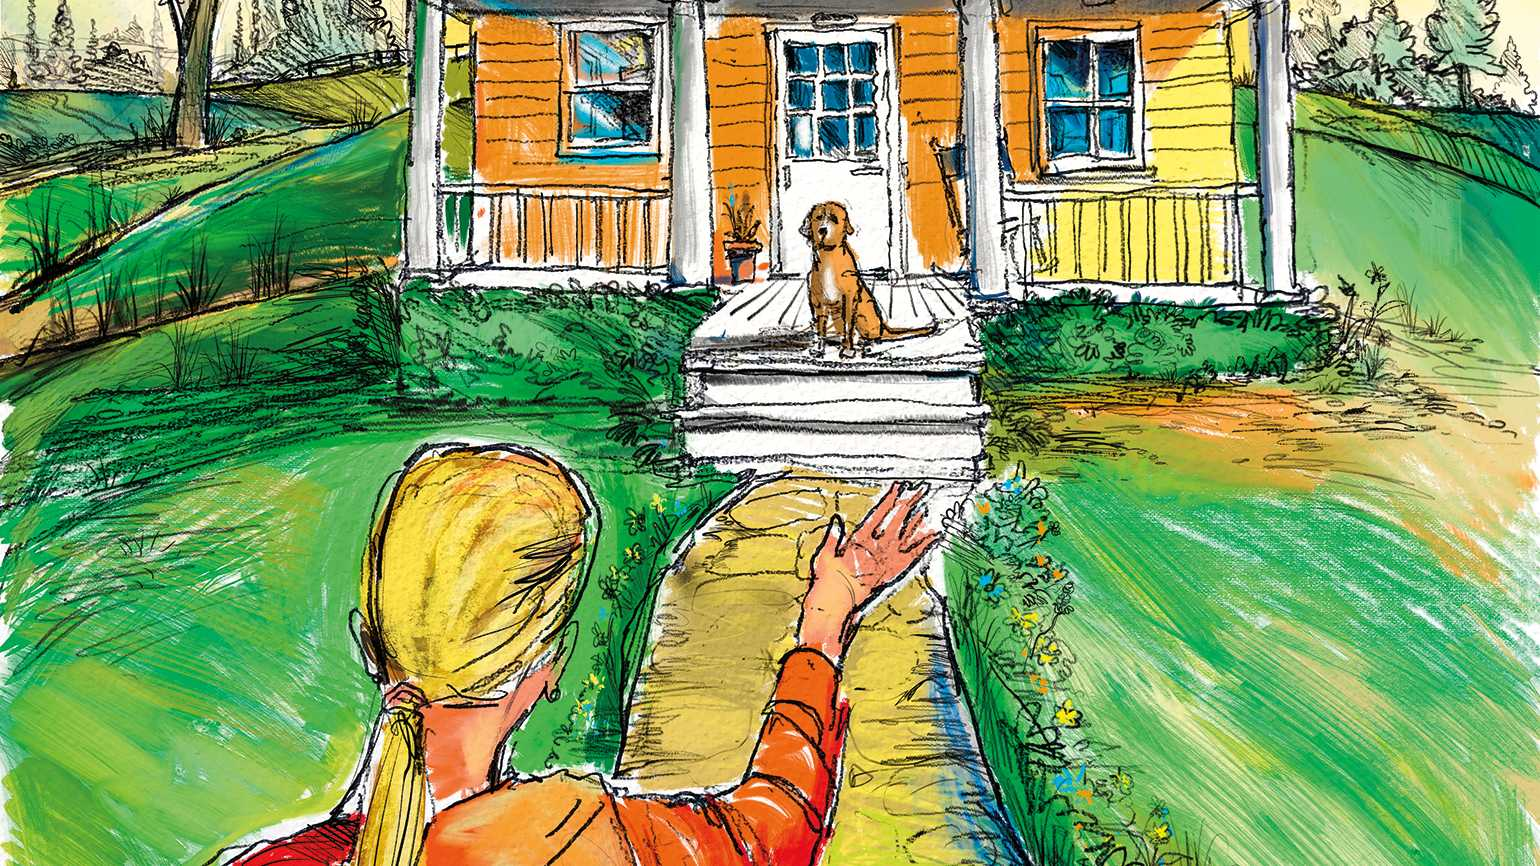 An artist's rendering of a woman waving to a dog who awaits her arrival on the front porch